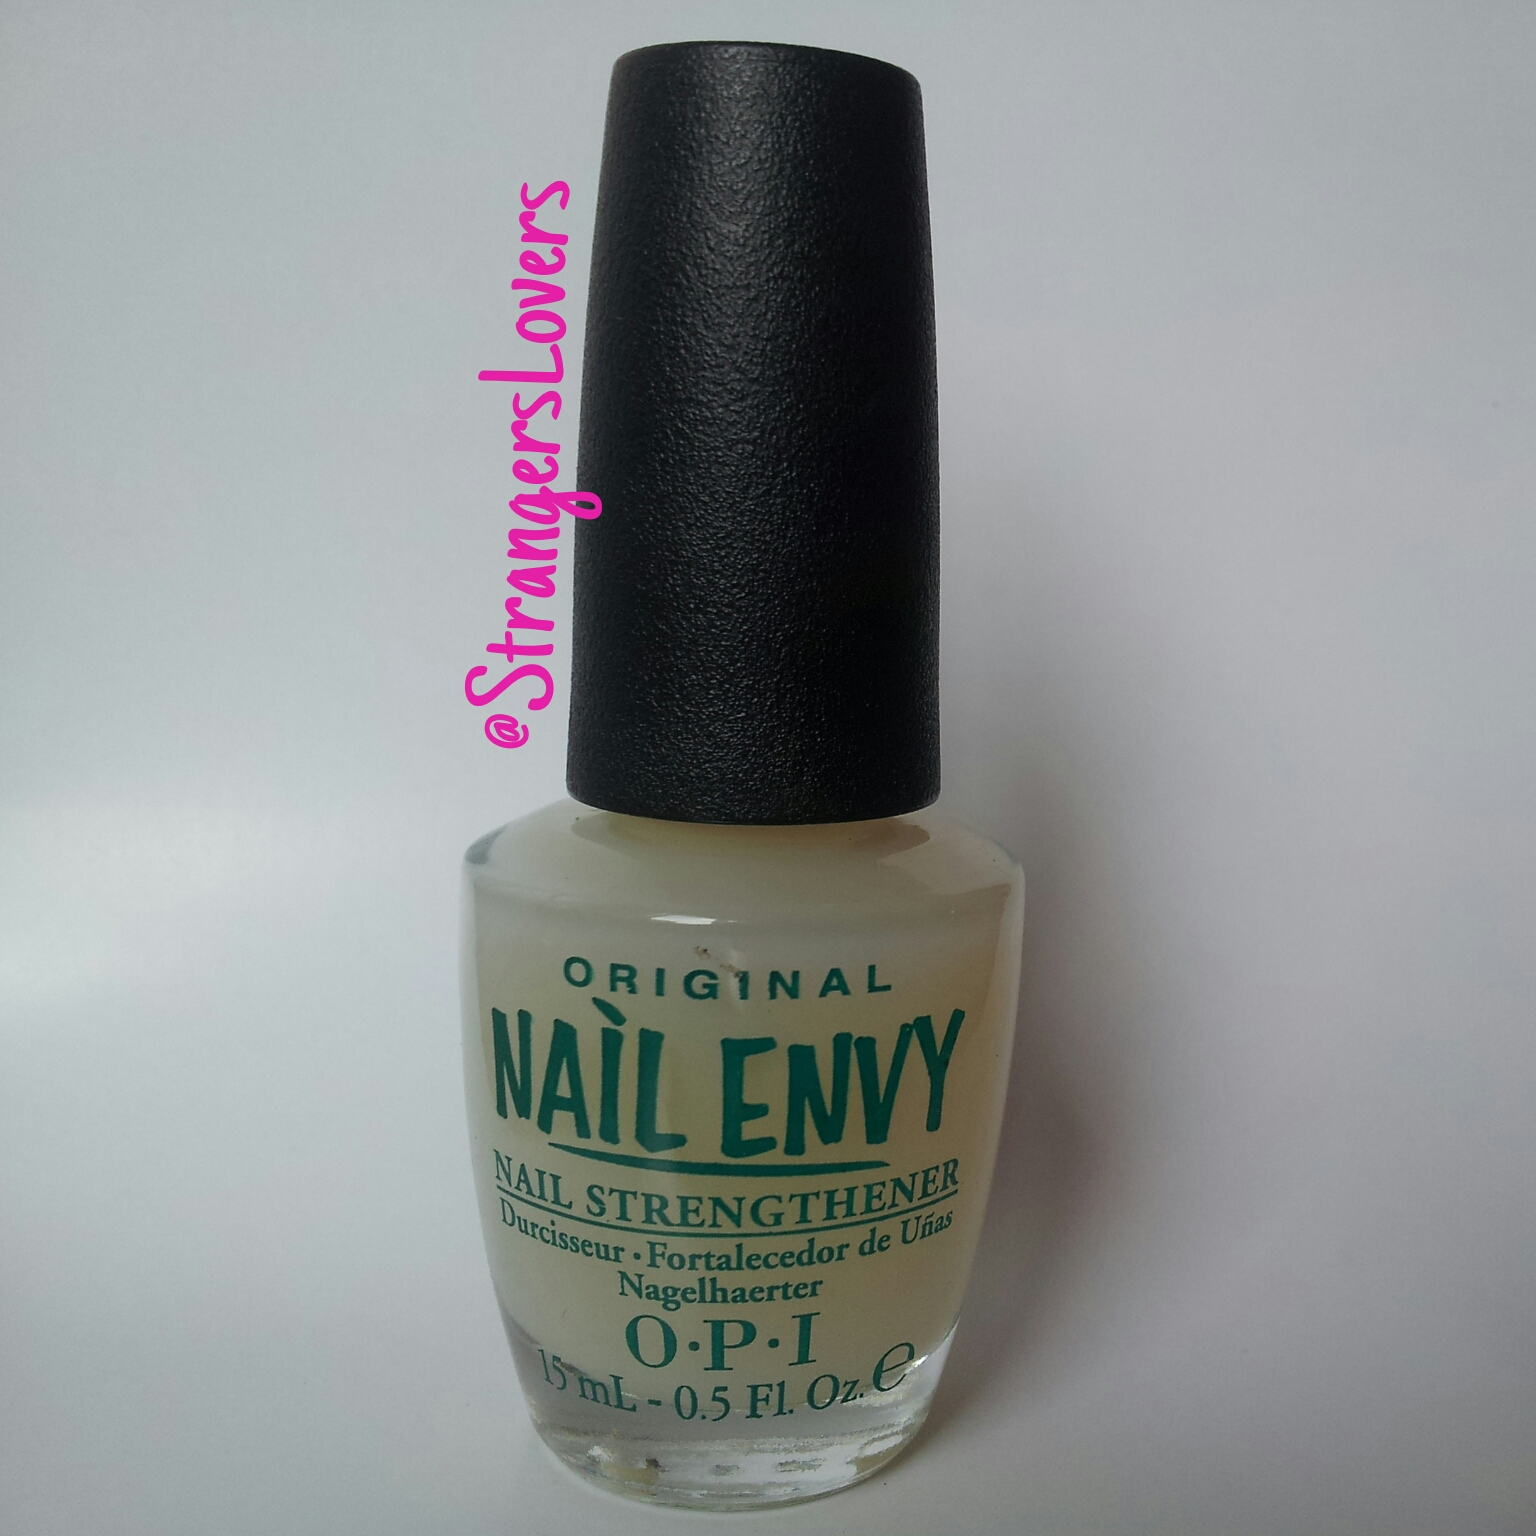 opi nail strengthener instructions